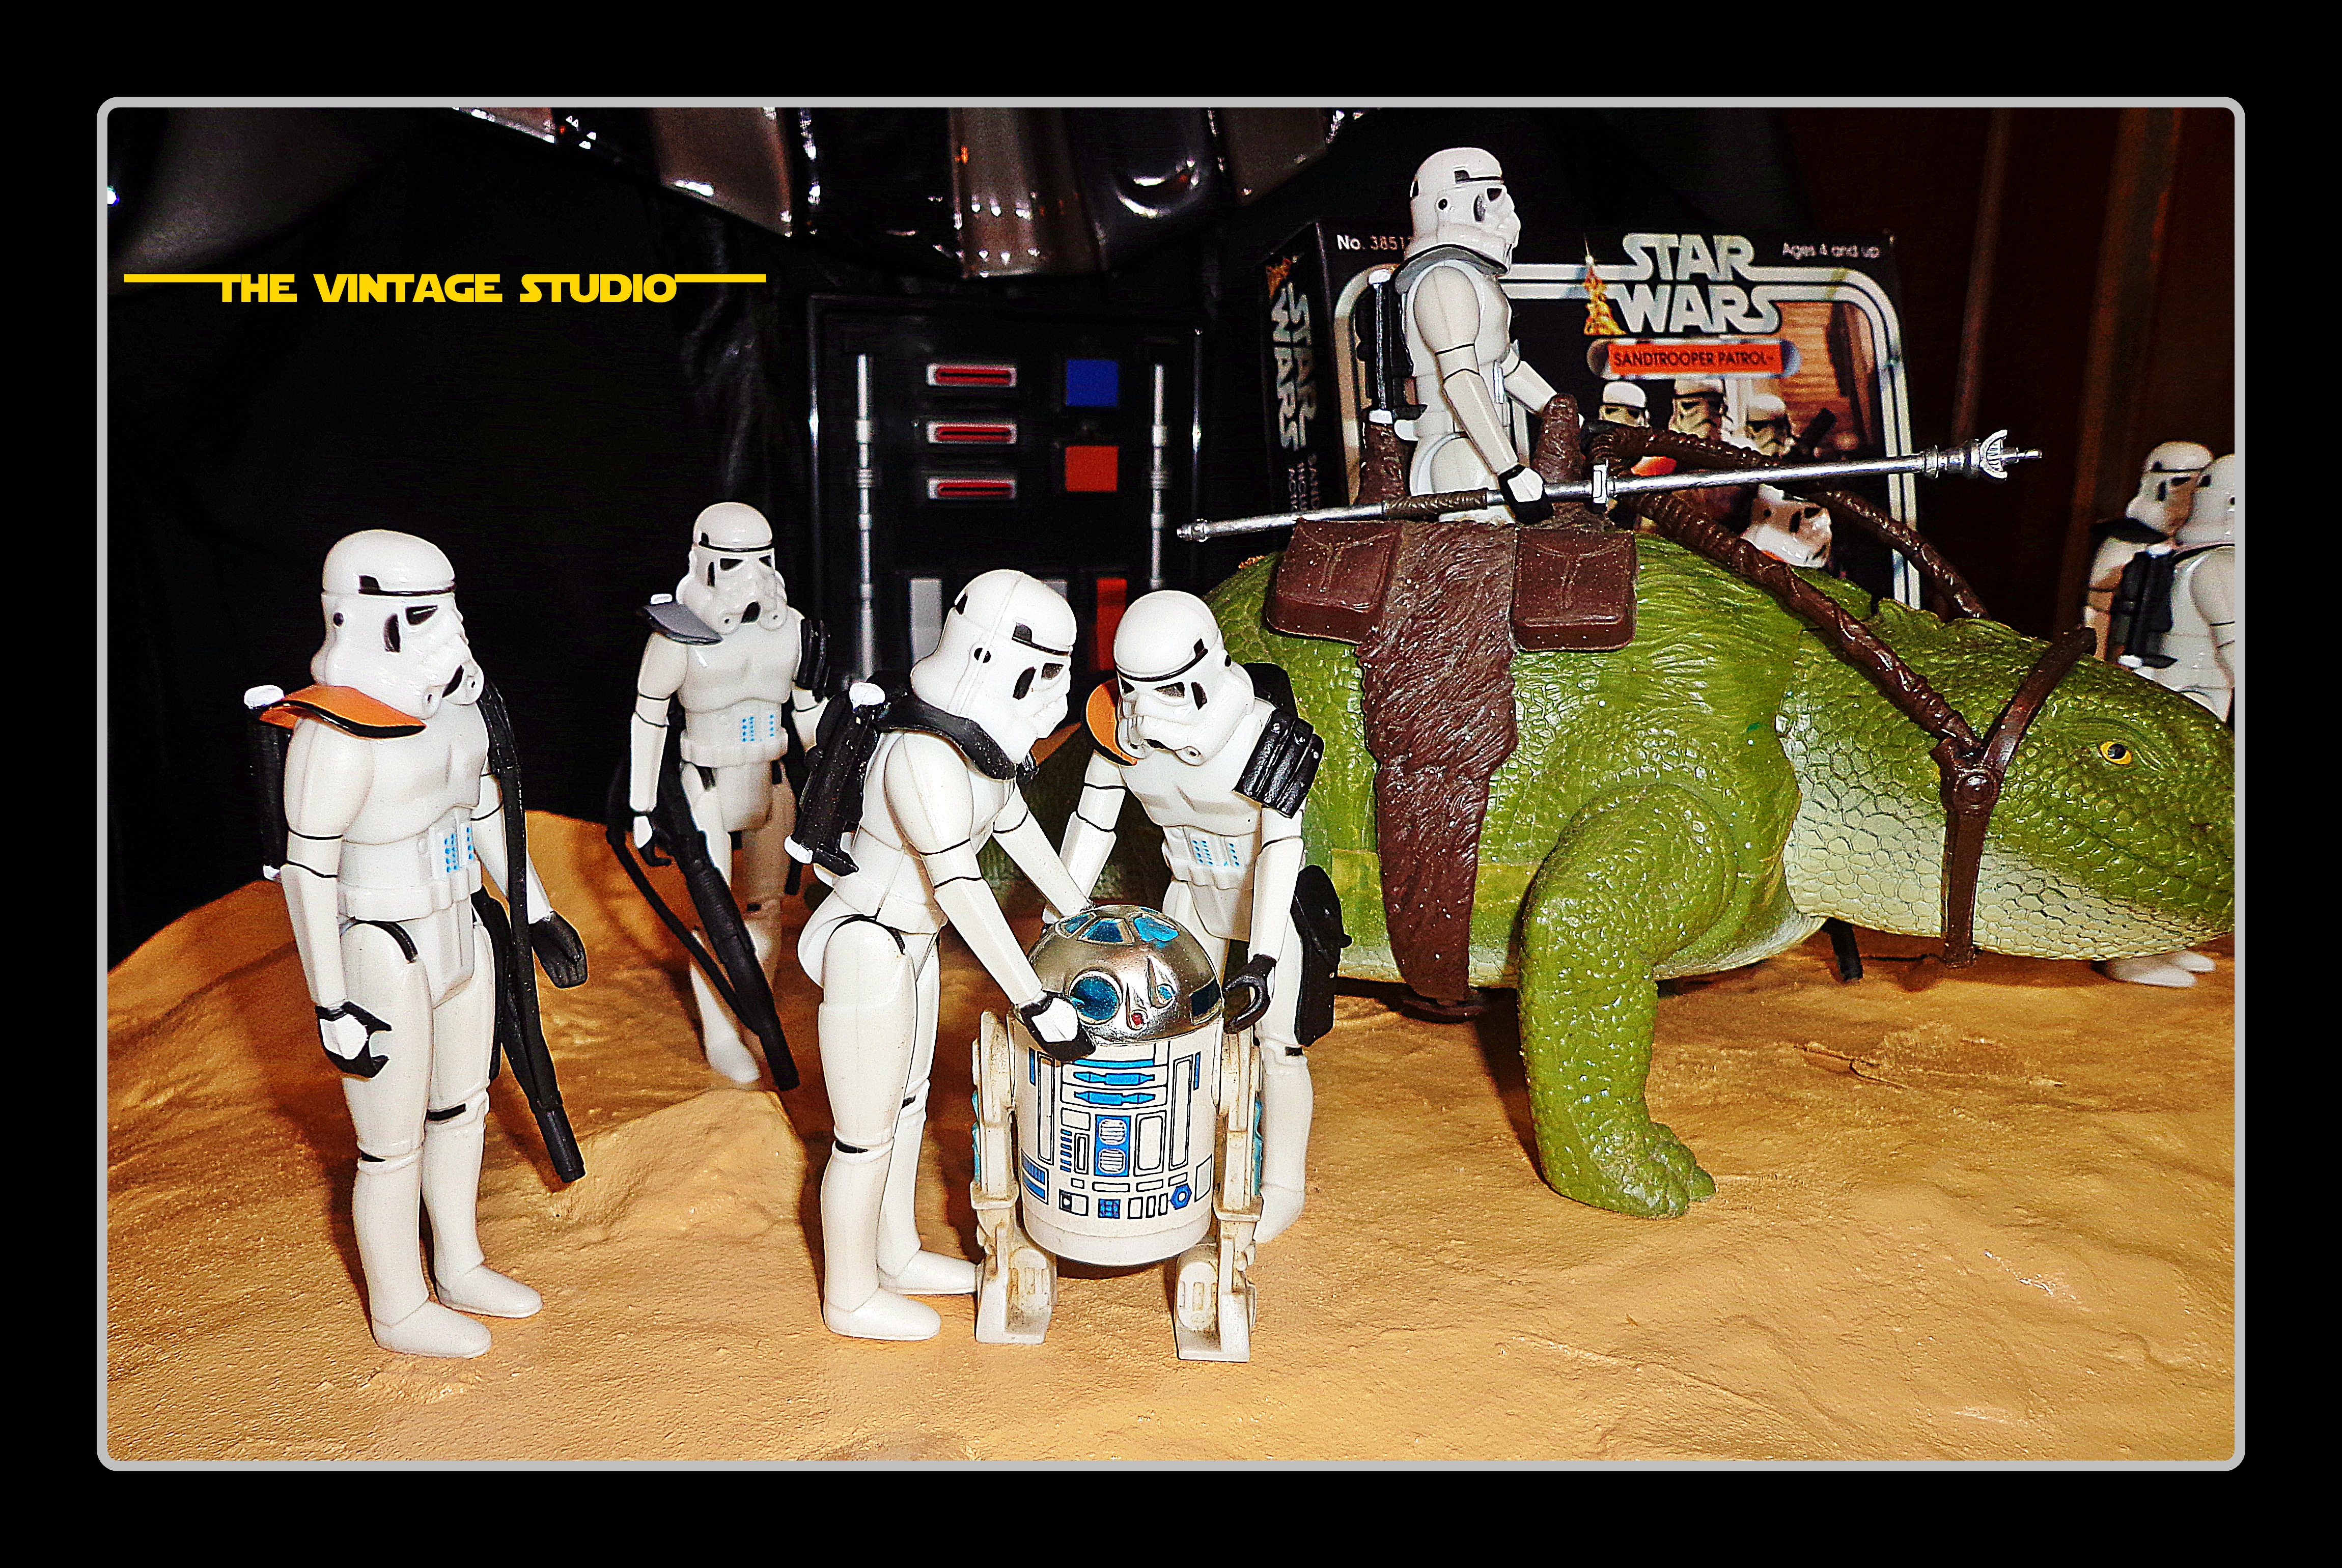 IF KENNER WOULD HAVE GIVEN THEM THE CHANCE, THEY WOULD HAVE FOUND THOSE DROIDS (2)